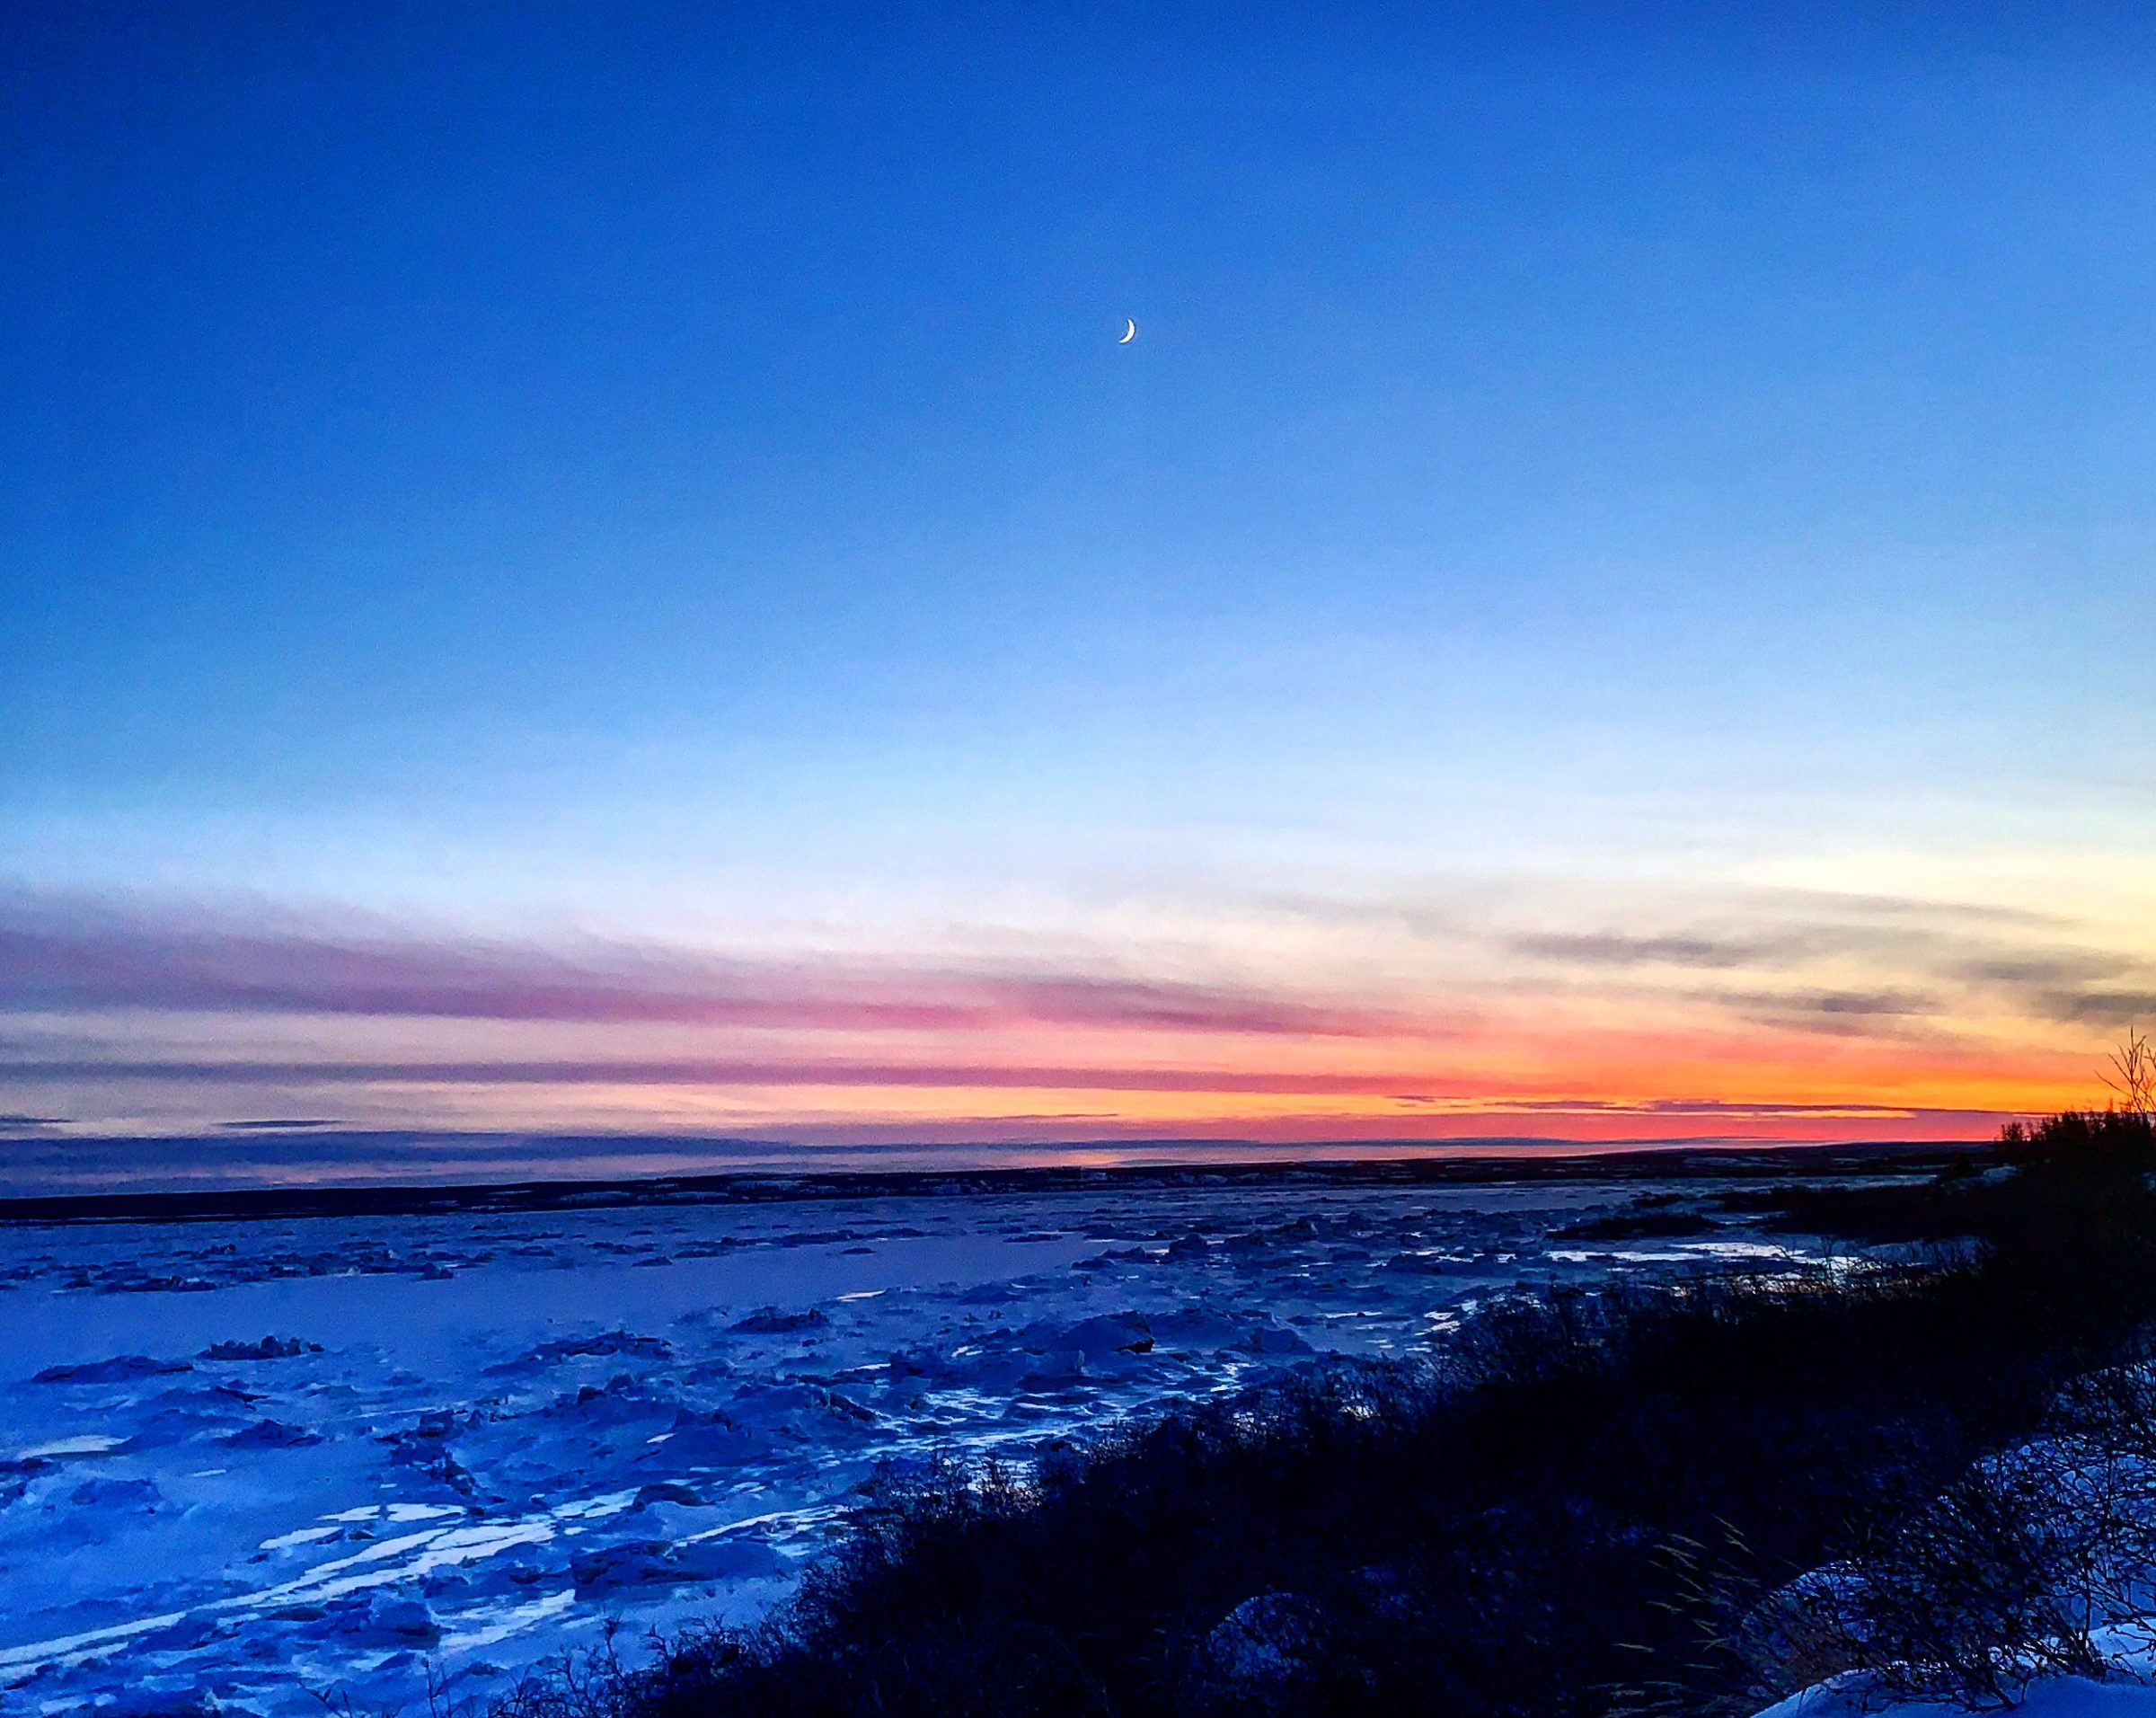 """A waxing crescent moon hangs in the sky above the Koksoak River near Kuujjuaq, as seen from the Range neighbourhood on the afternoon of Jan. 16. """"Further out in the middle of the river, there's still a huge strong river flowing,"""" writes Malaya Qaunirq Chapman. """"This warm weather is wild for January."""" (Photo by Malaya Qaunirq Chapman)"""